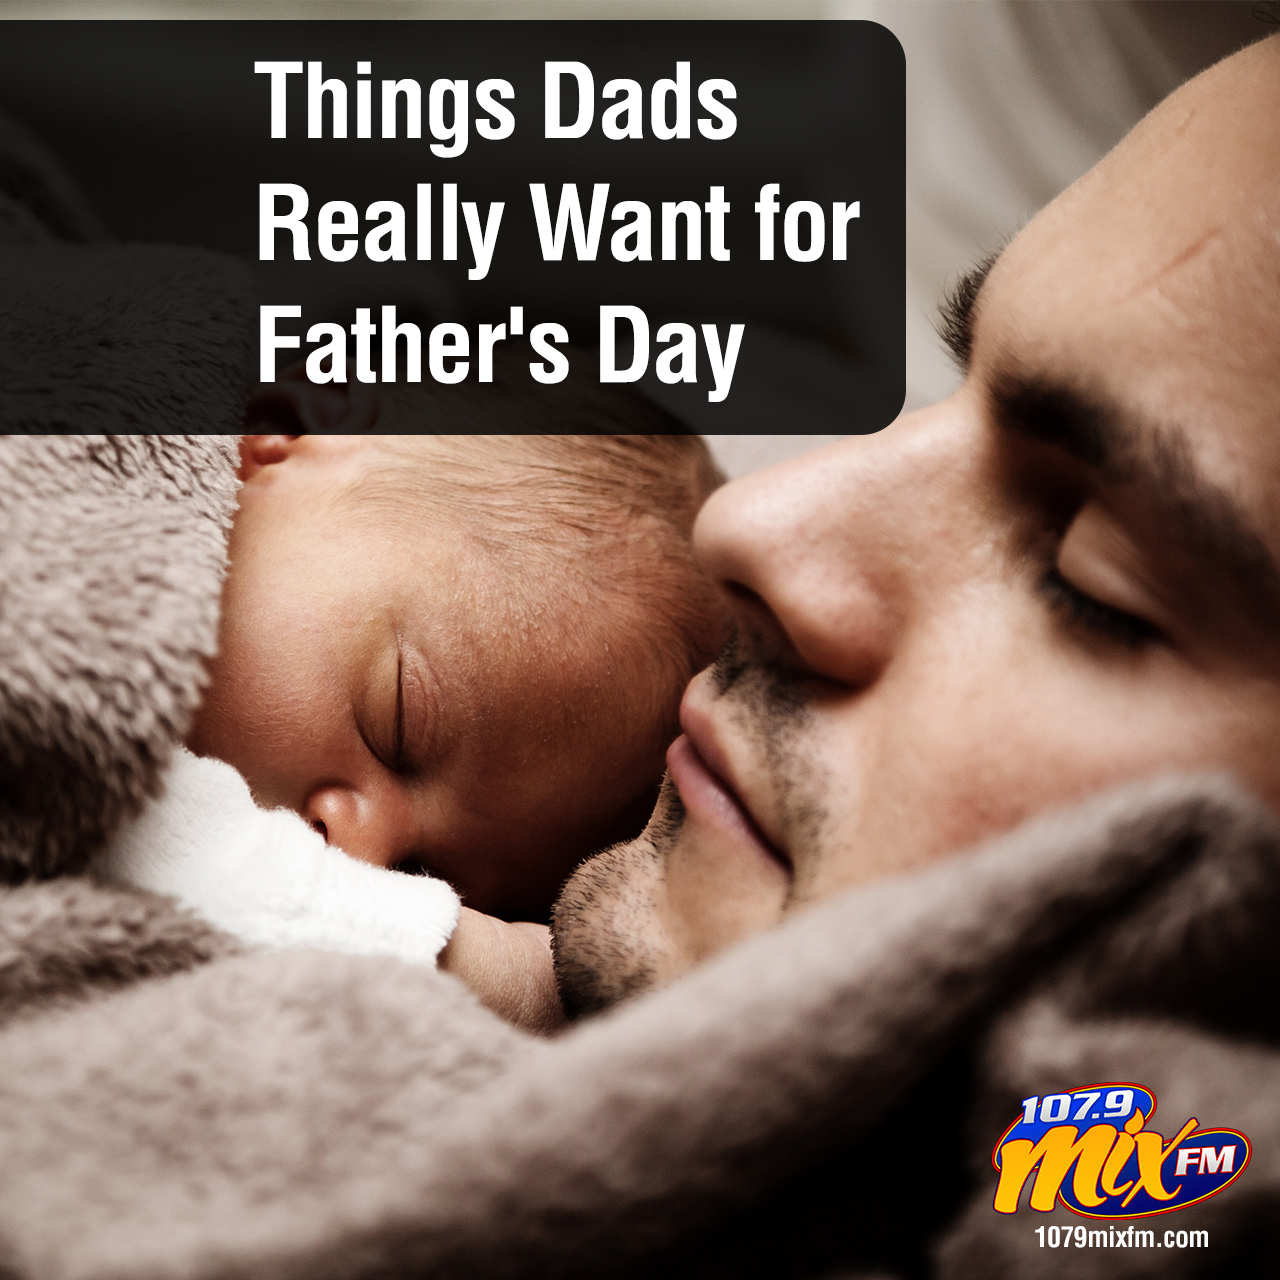 Things Dads Really Want for Father's Day